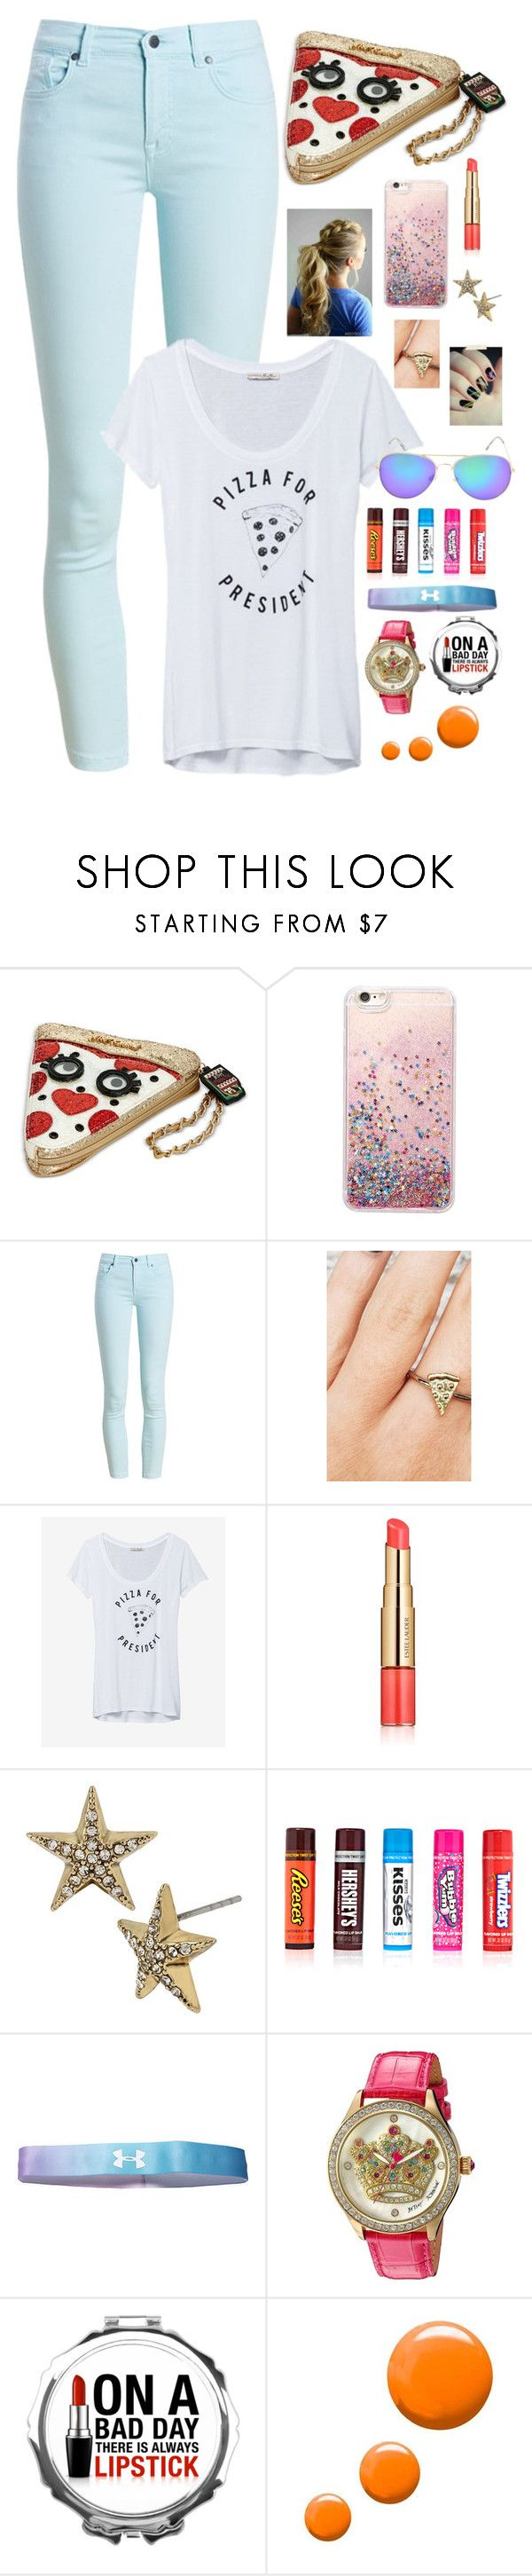 """Untitled #342"" by jan40218 ❤ liked on Polyvore featuring Betsey Johnson, Barbour, Rock 'N Rose, Express, Estée Lauder, Hershey's, Under Armour and Topshop"